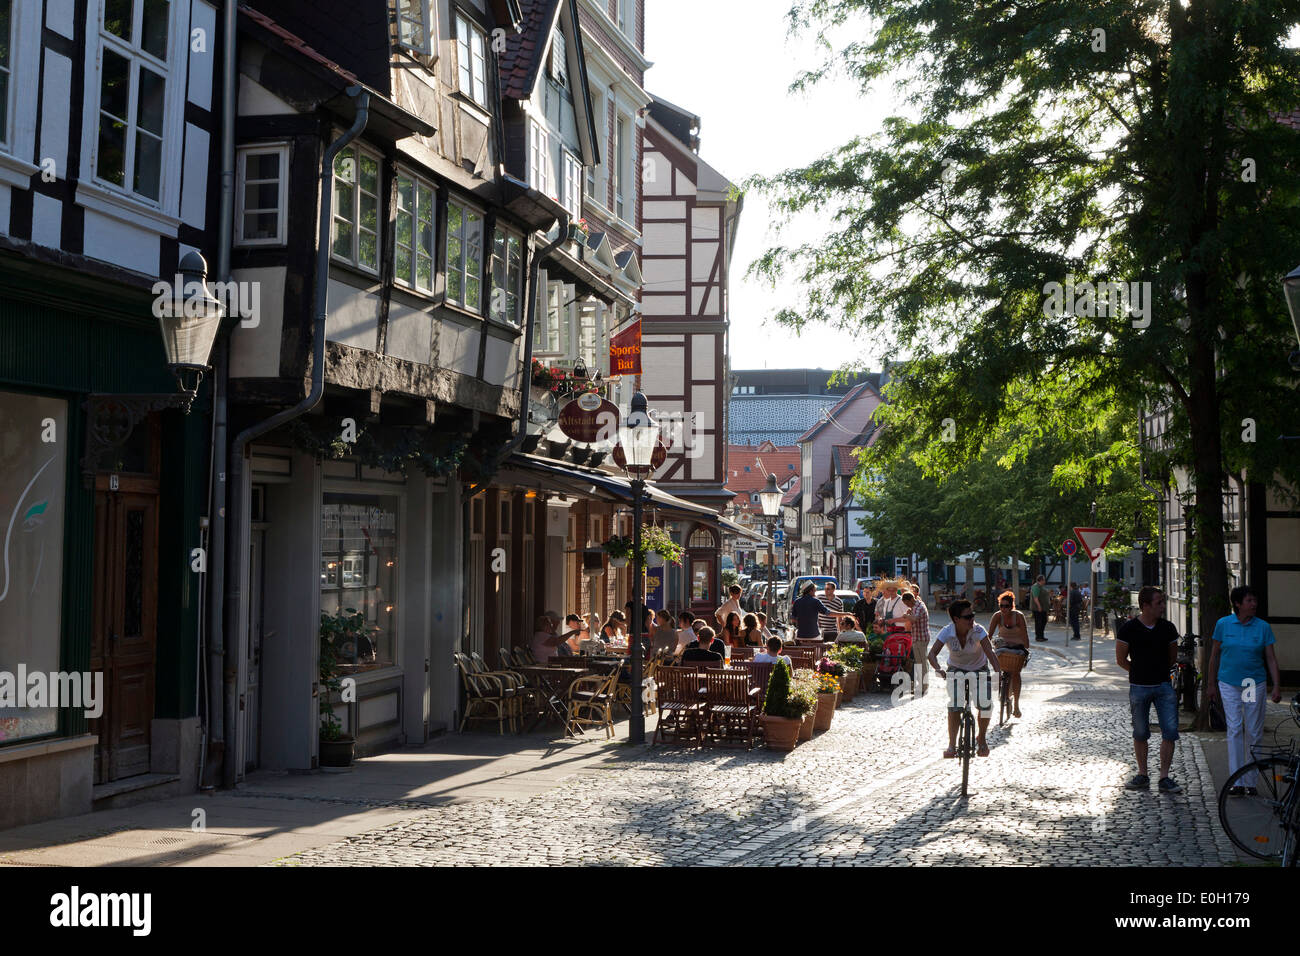 Magni district with historic half-timber houses and cafes, Brunswick, Lower Saxony, Germany - Stock Image